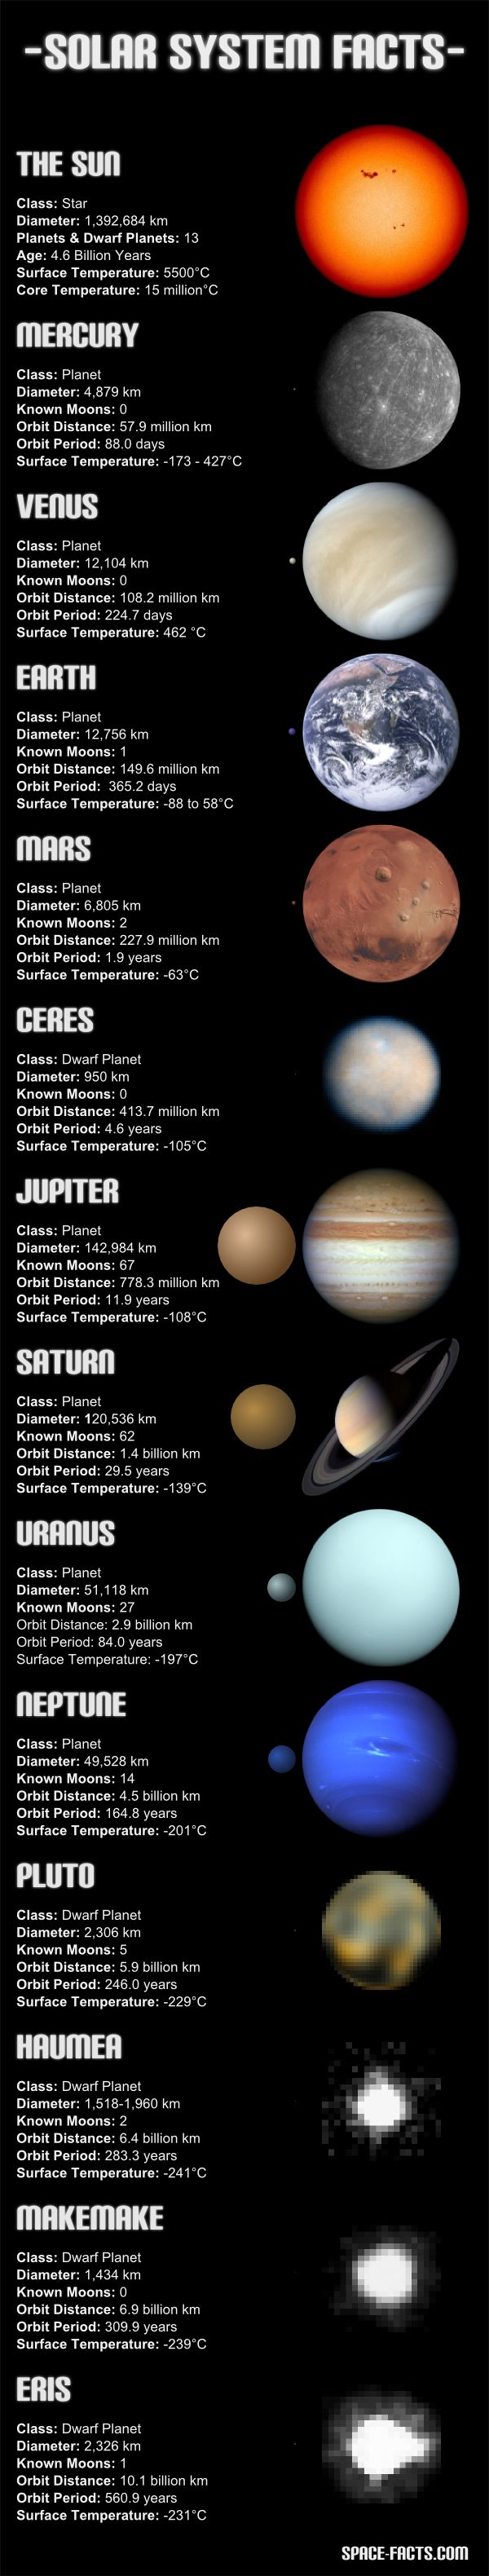 Information on the Sun, planets and dwarf planets in the ...